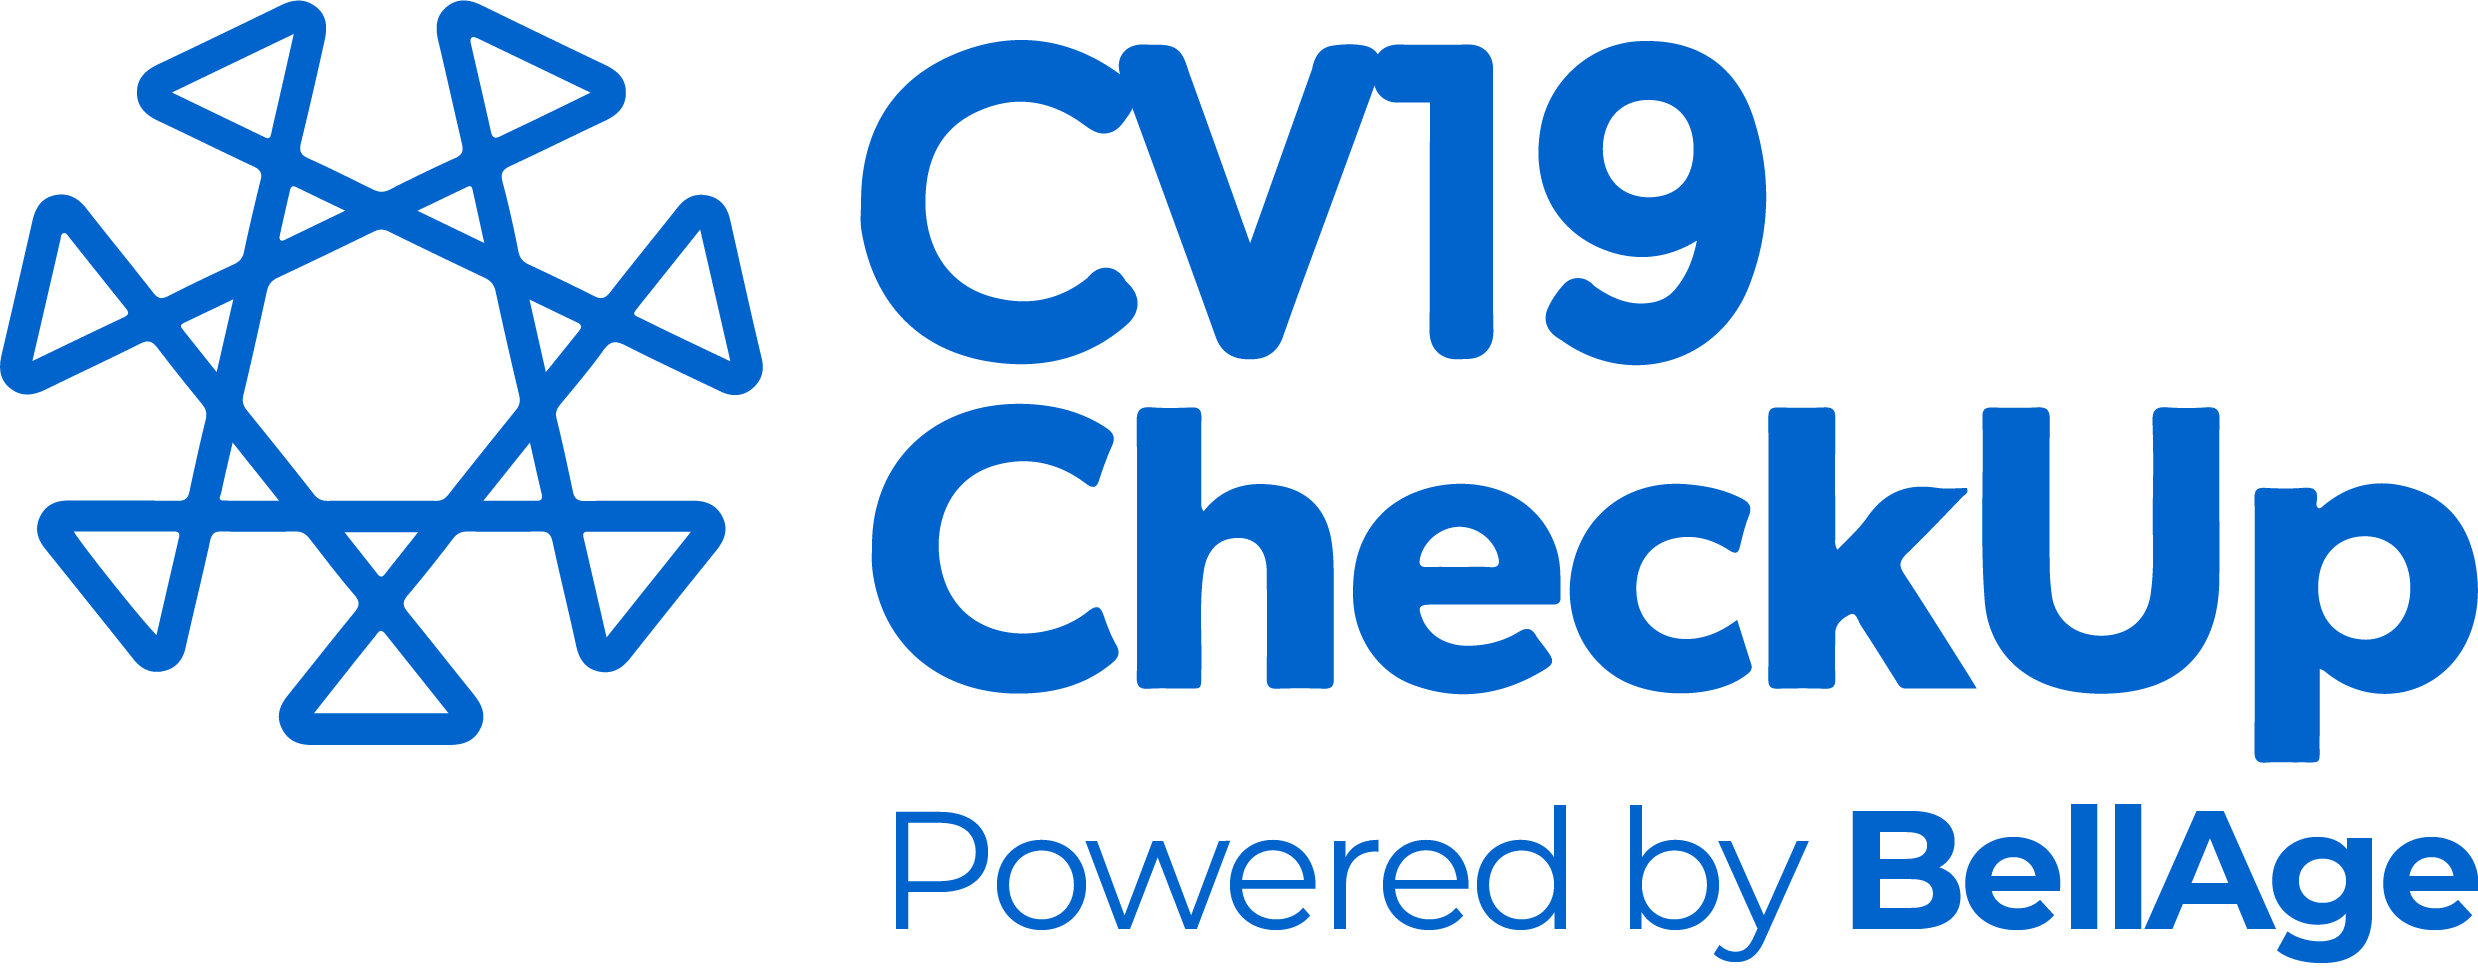 CV19 CheckUp Powered by BellAge